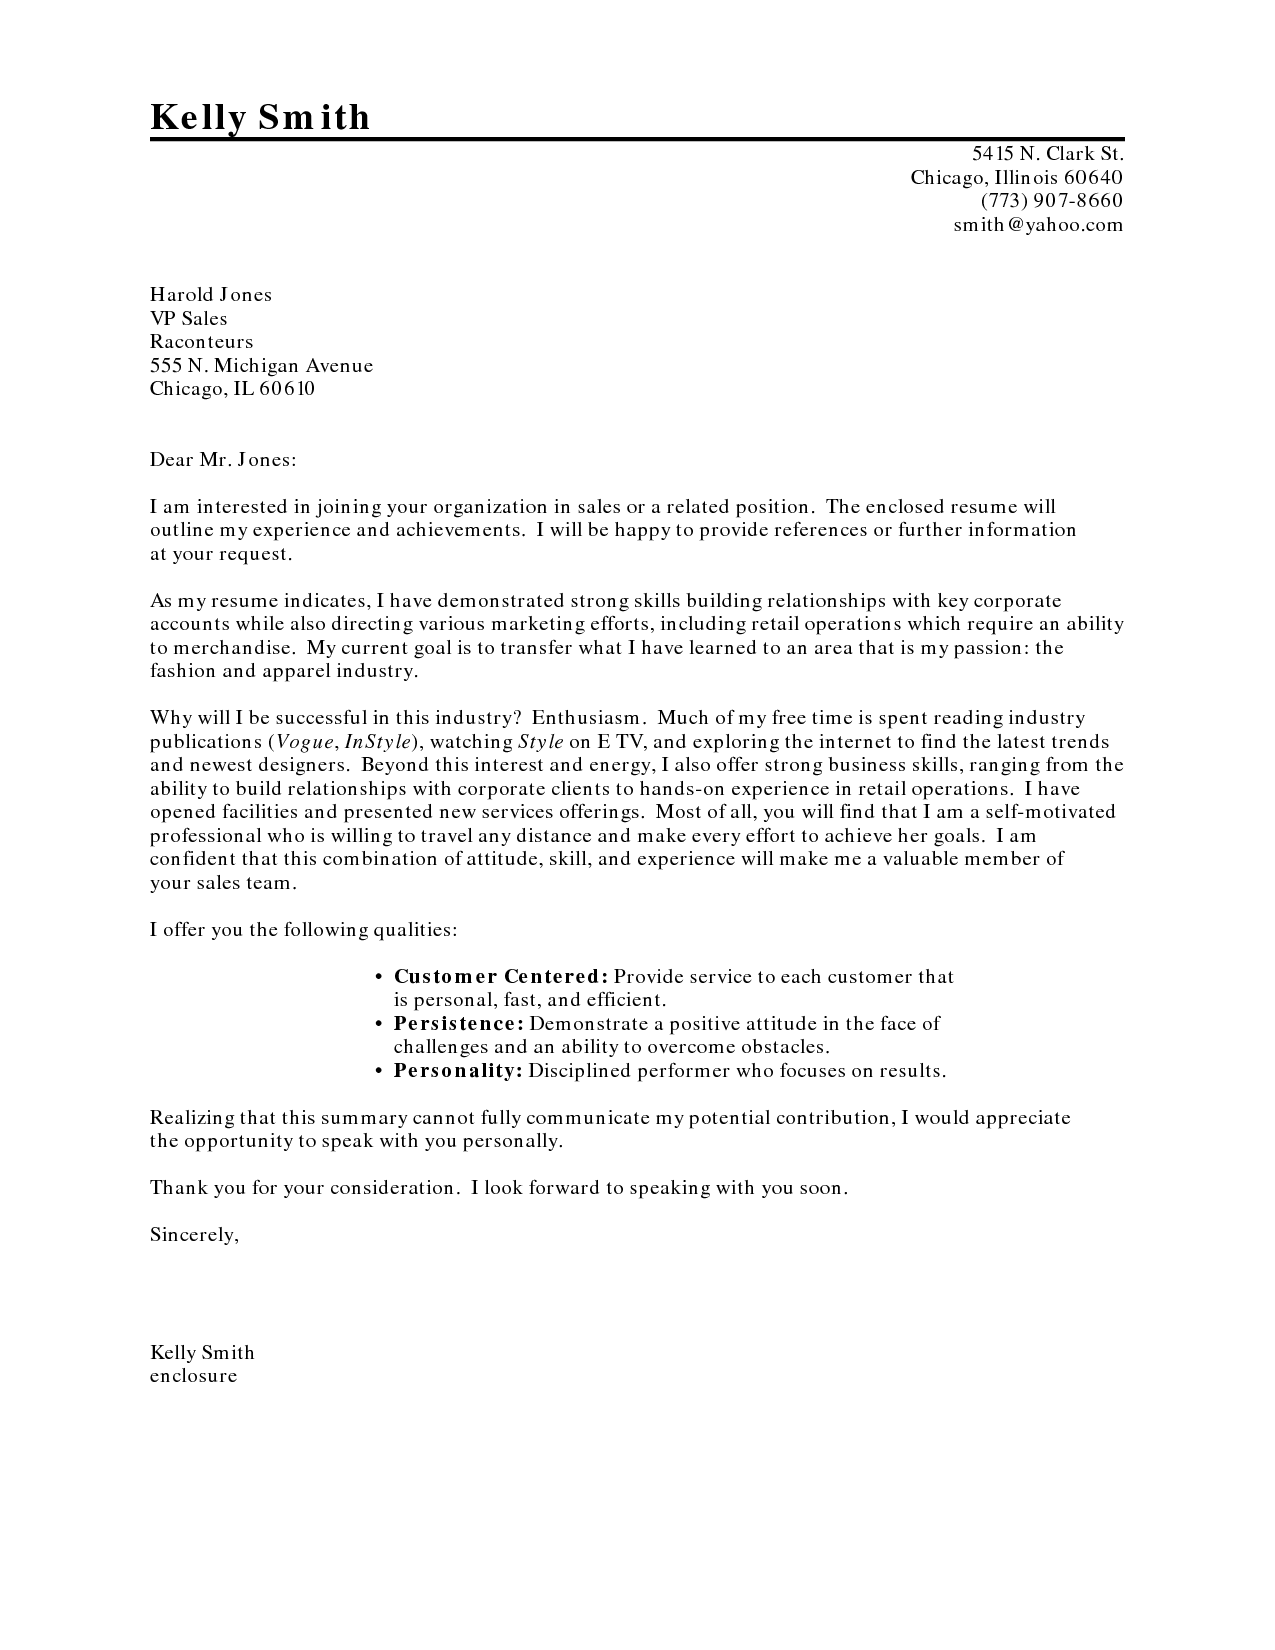 career change cover lettersimple cover letter application letter sample